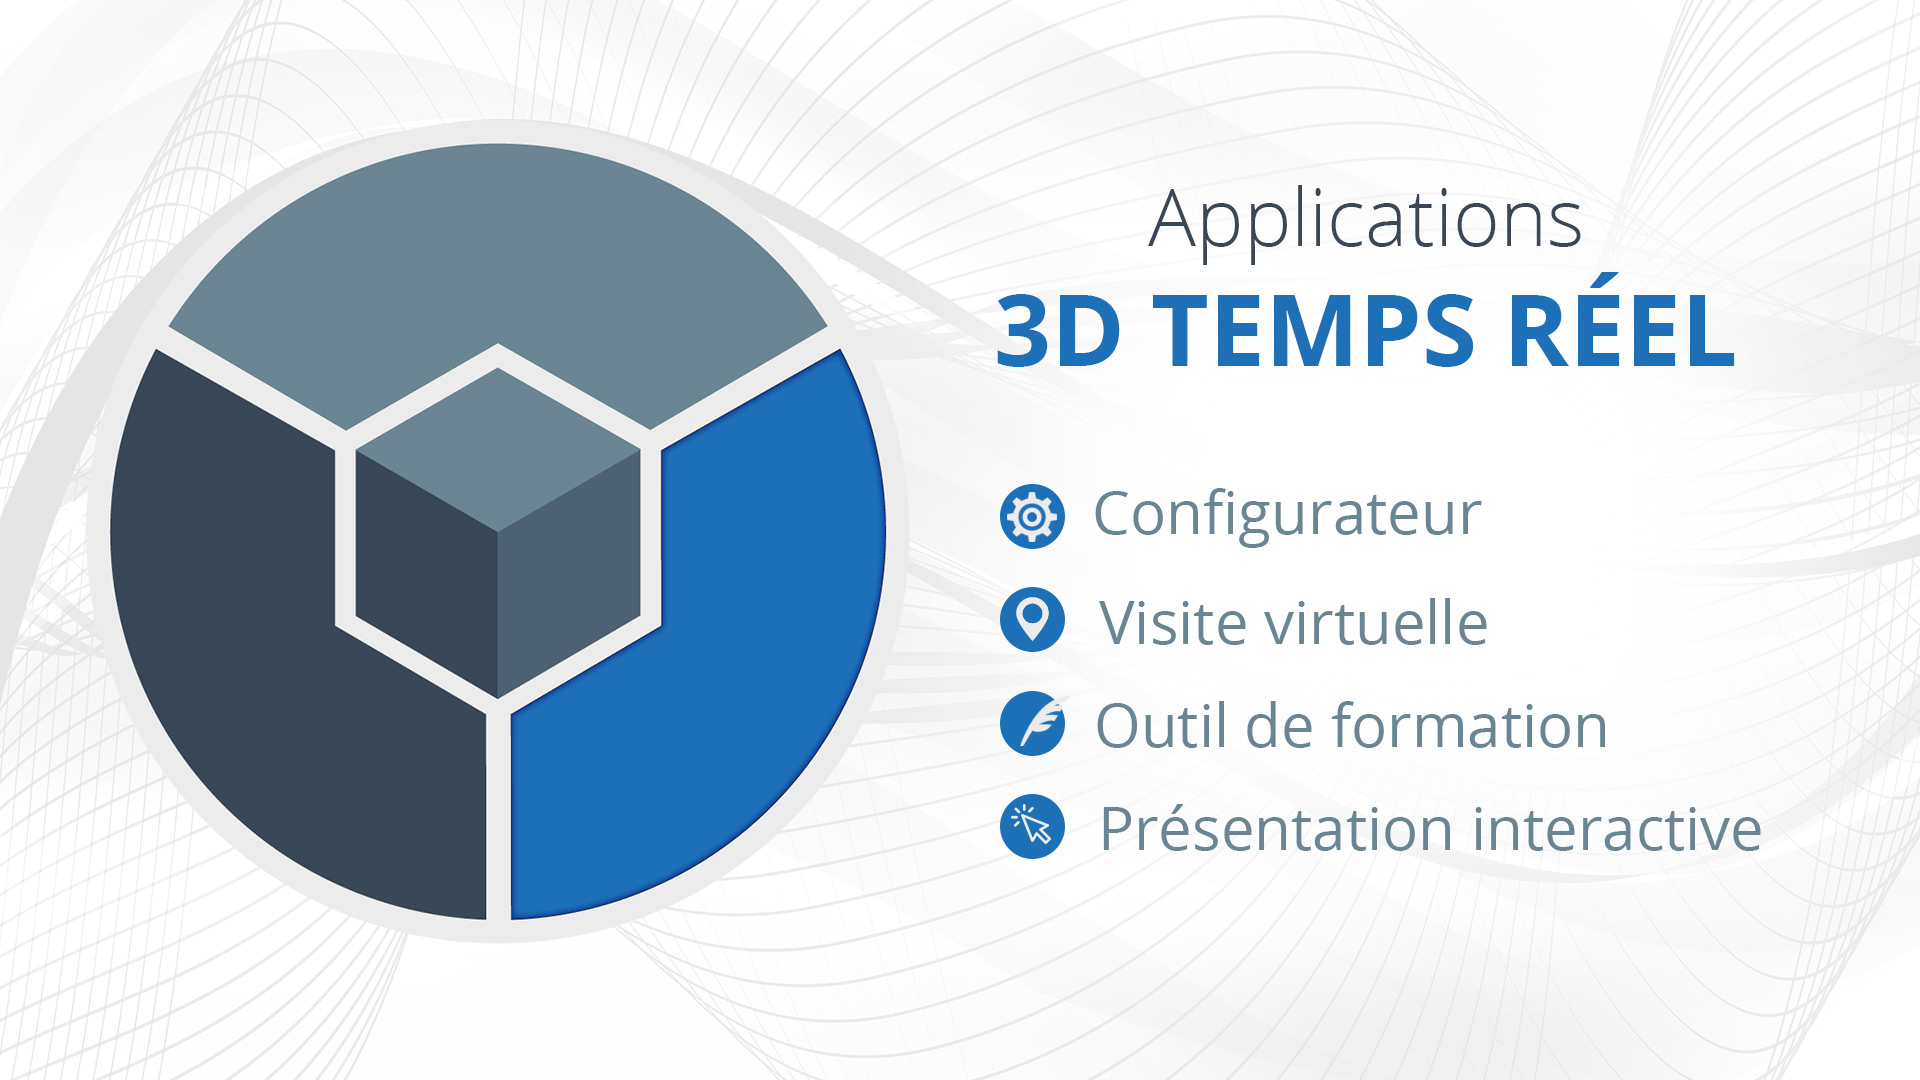 Les applications 3D temps réel possible sur Stadia ?